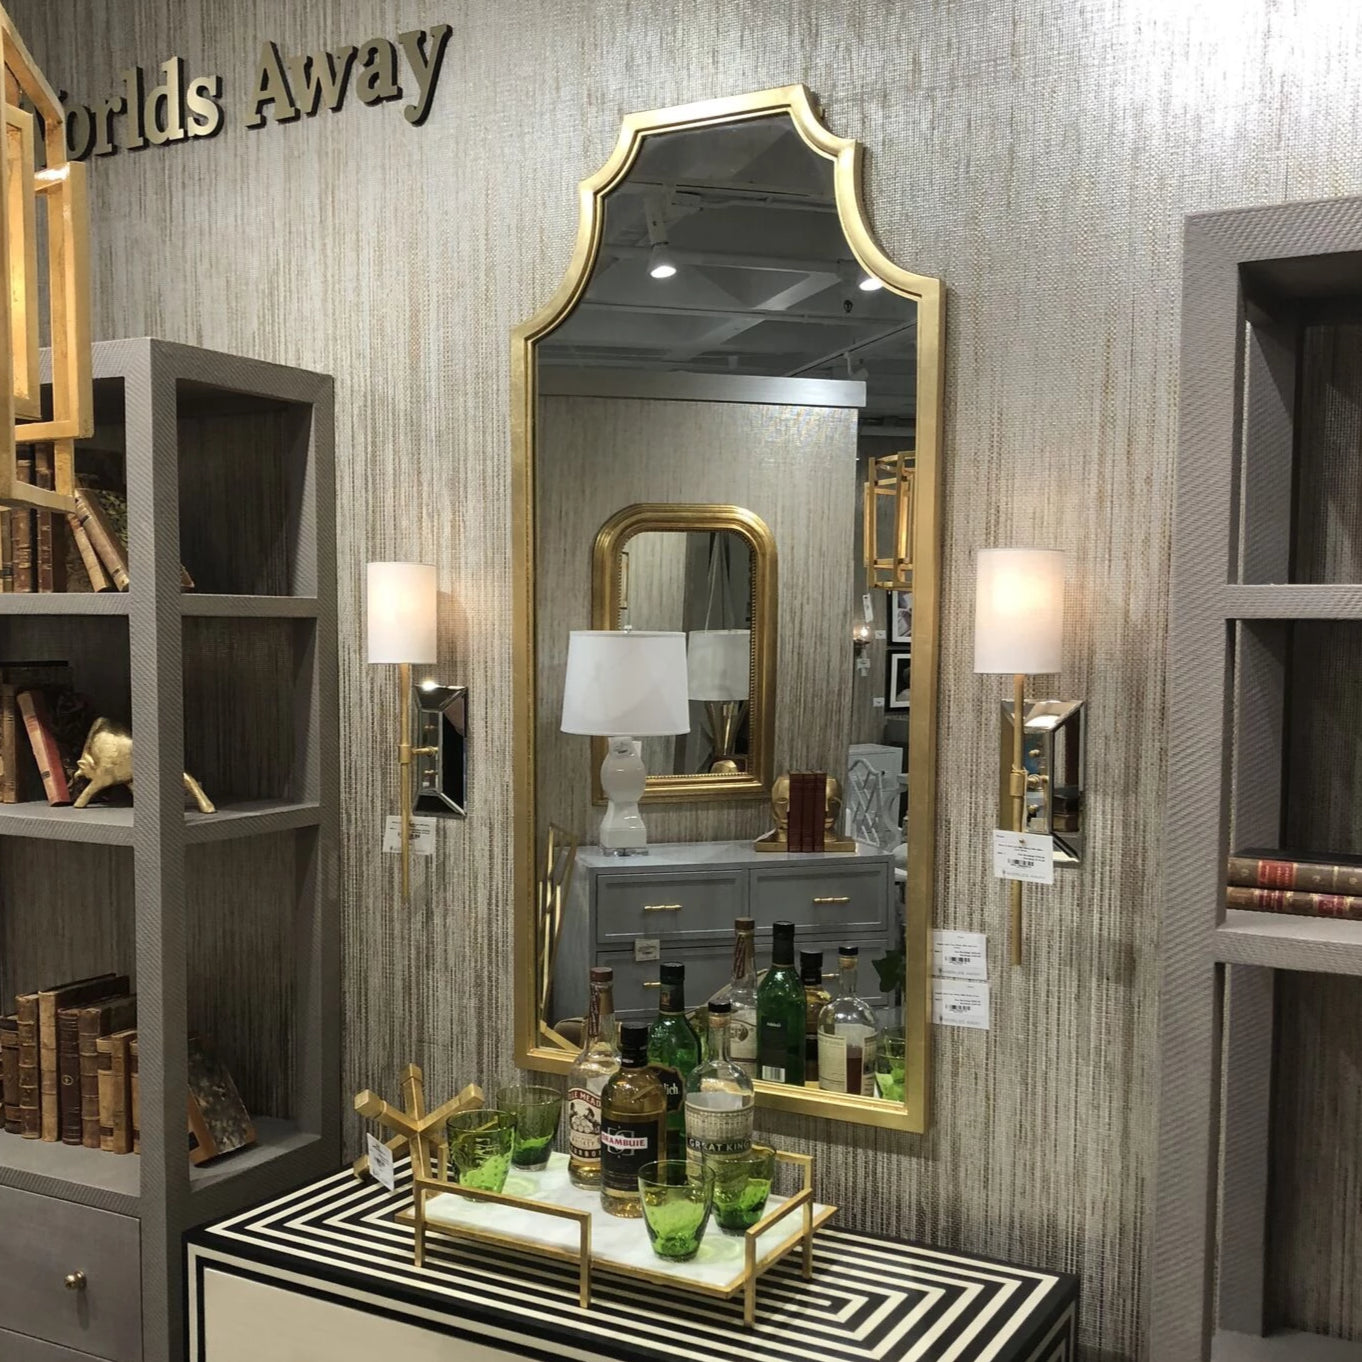 worlds away Finley floor arch mirror gold showroom